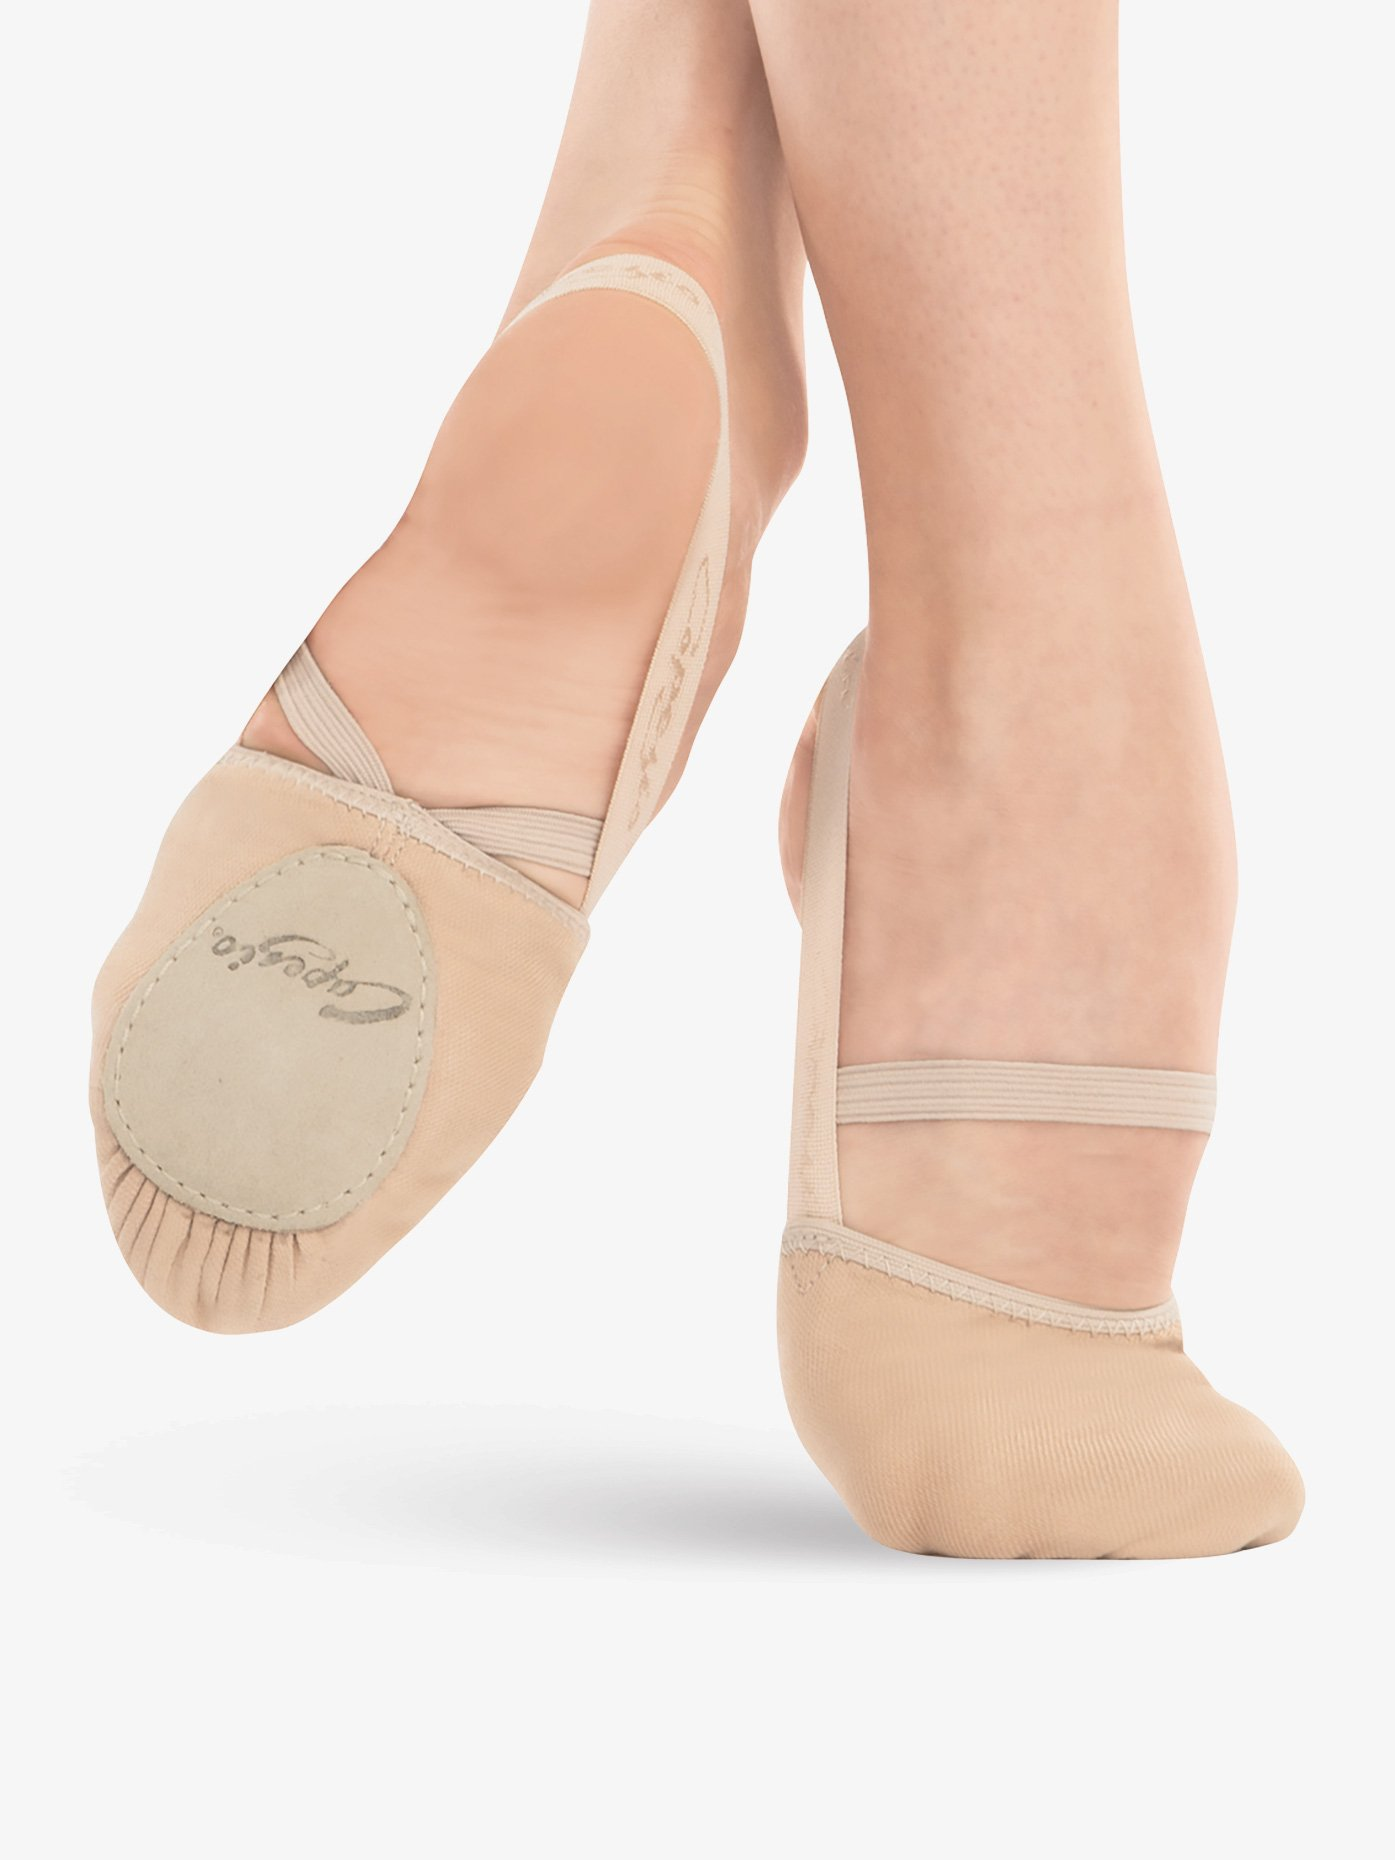 c96b19aaefb4 Pirouette II Canvas Lyrical Shoes - Lyrical   Modern